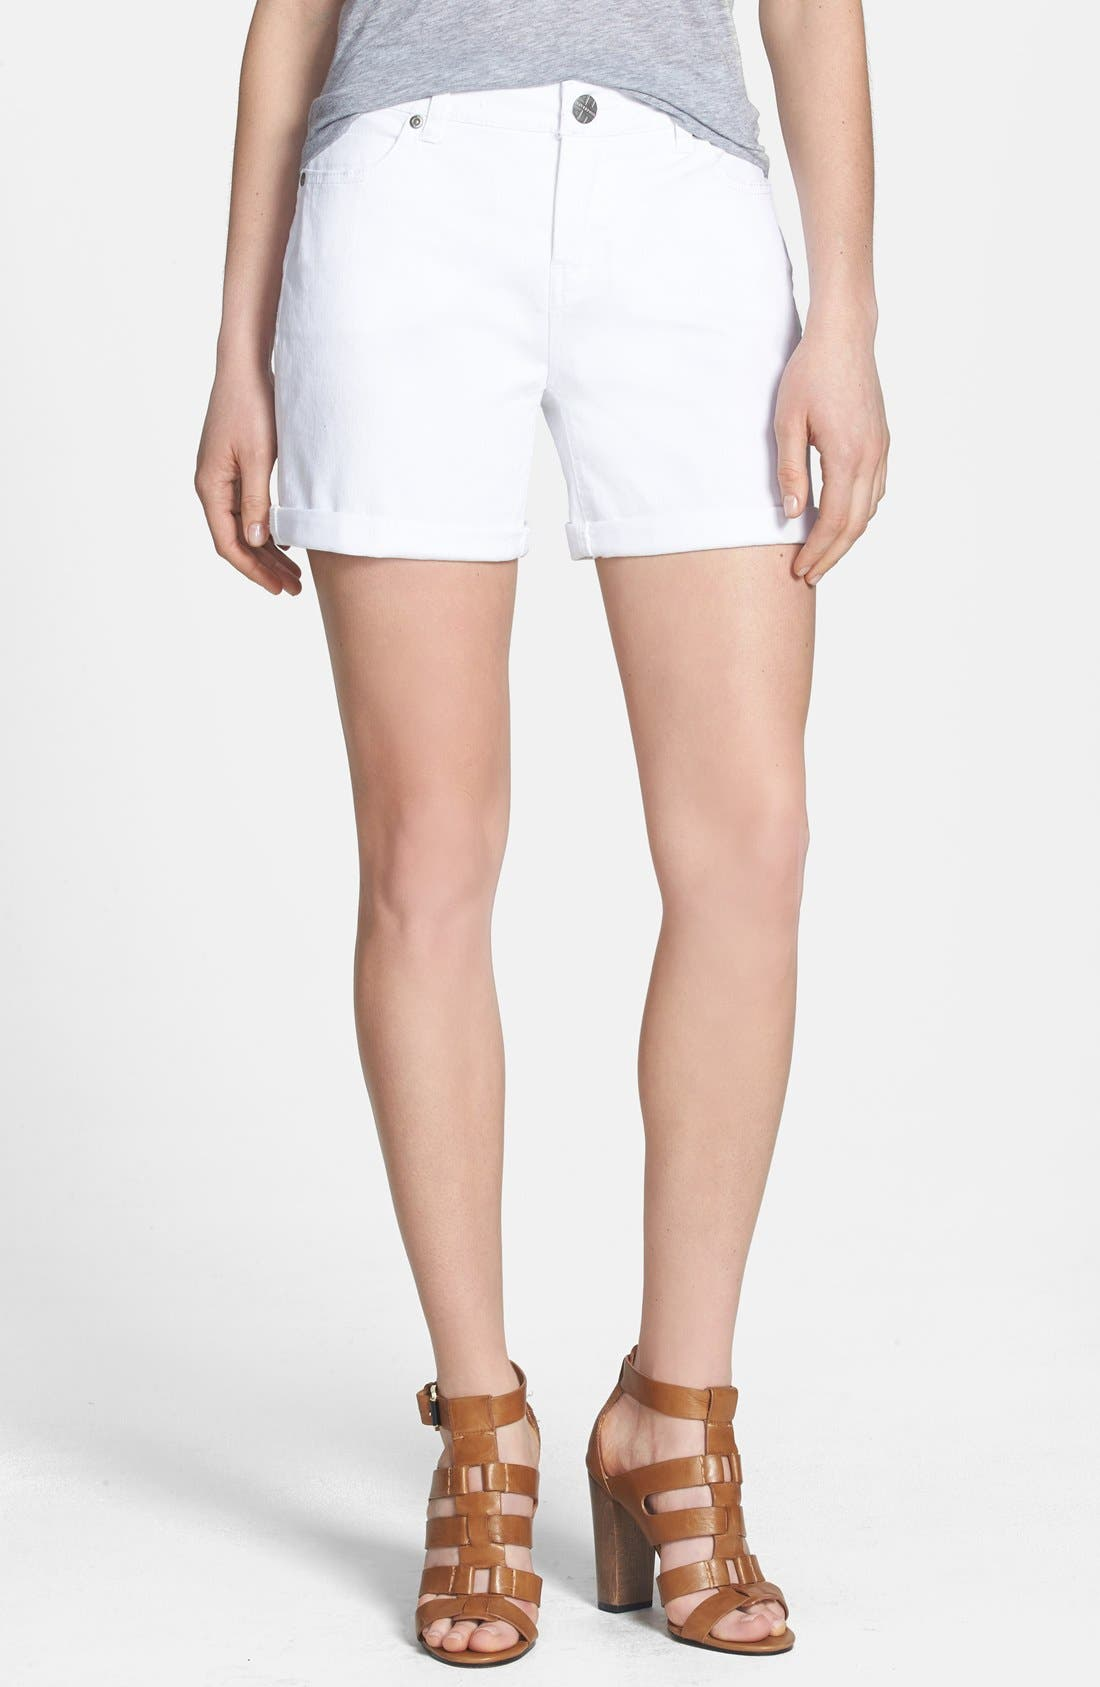 Alternate Image 1 Selected - Liverpool Jeans Company 'Linda' Denim Shorts (White)